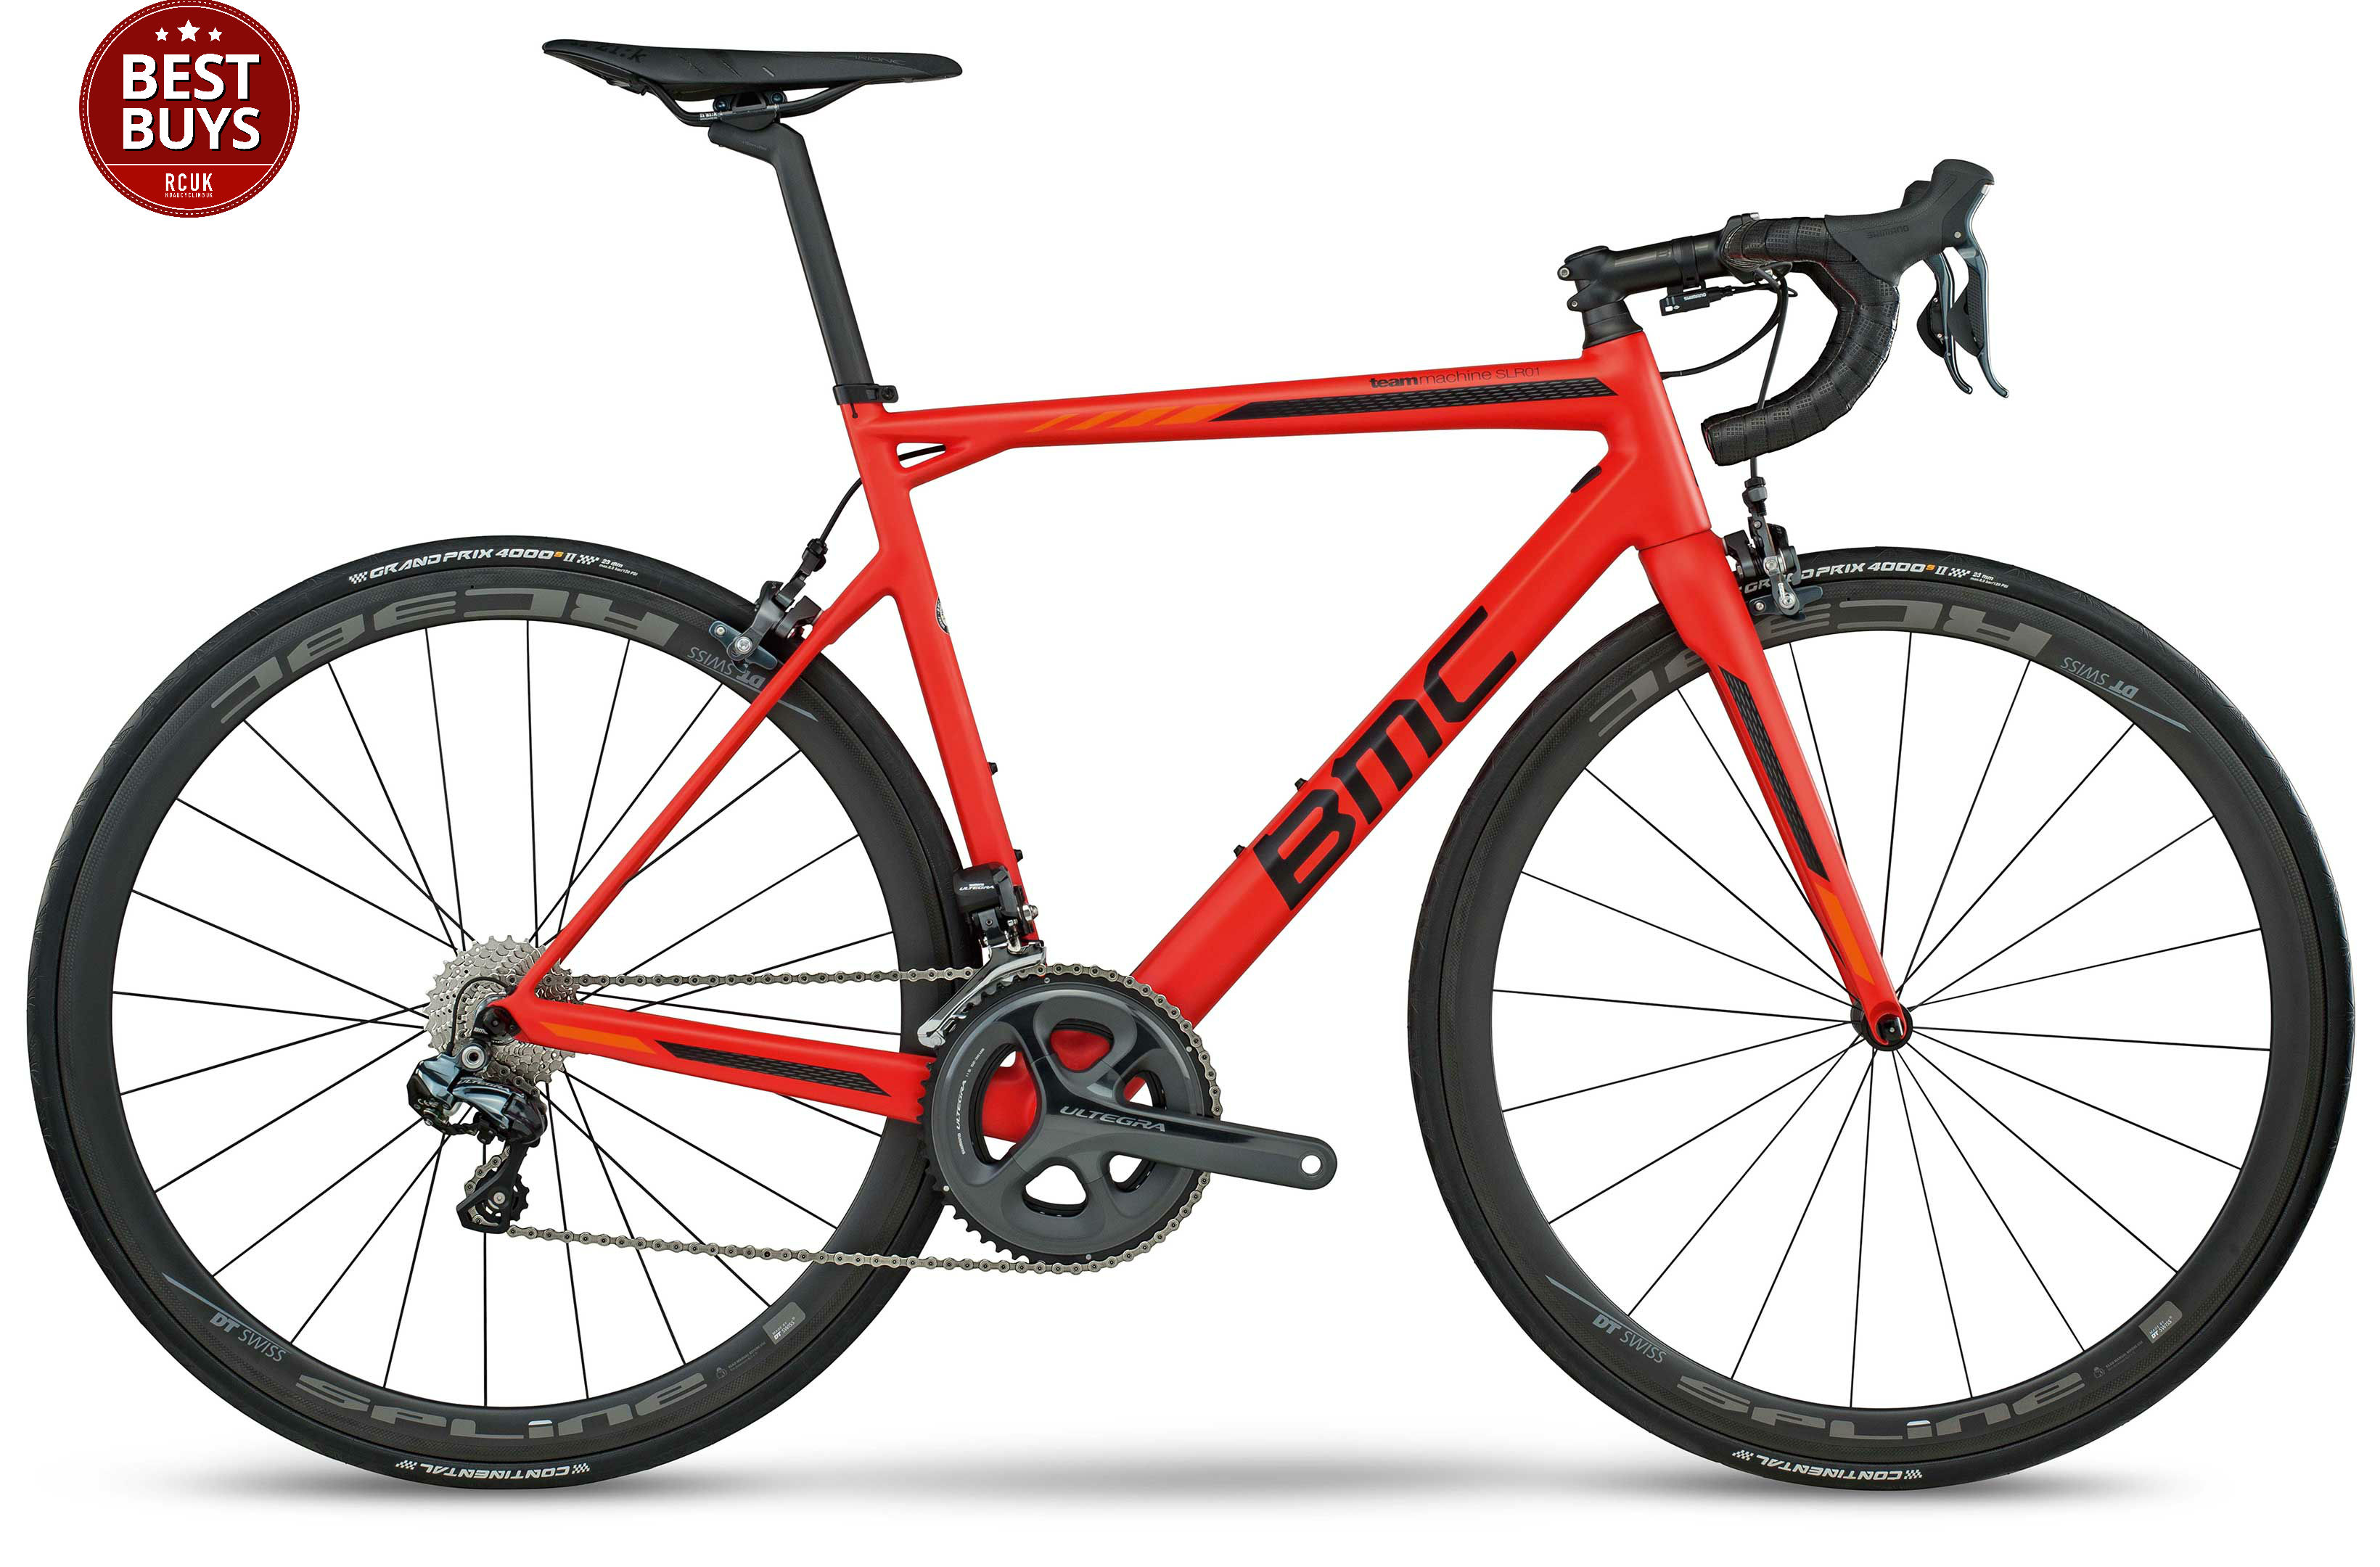 Cheap Road Bikes 14 Of The Best Deals From Across T